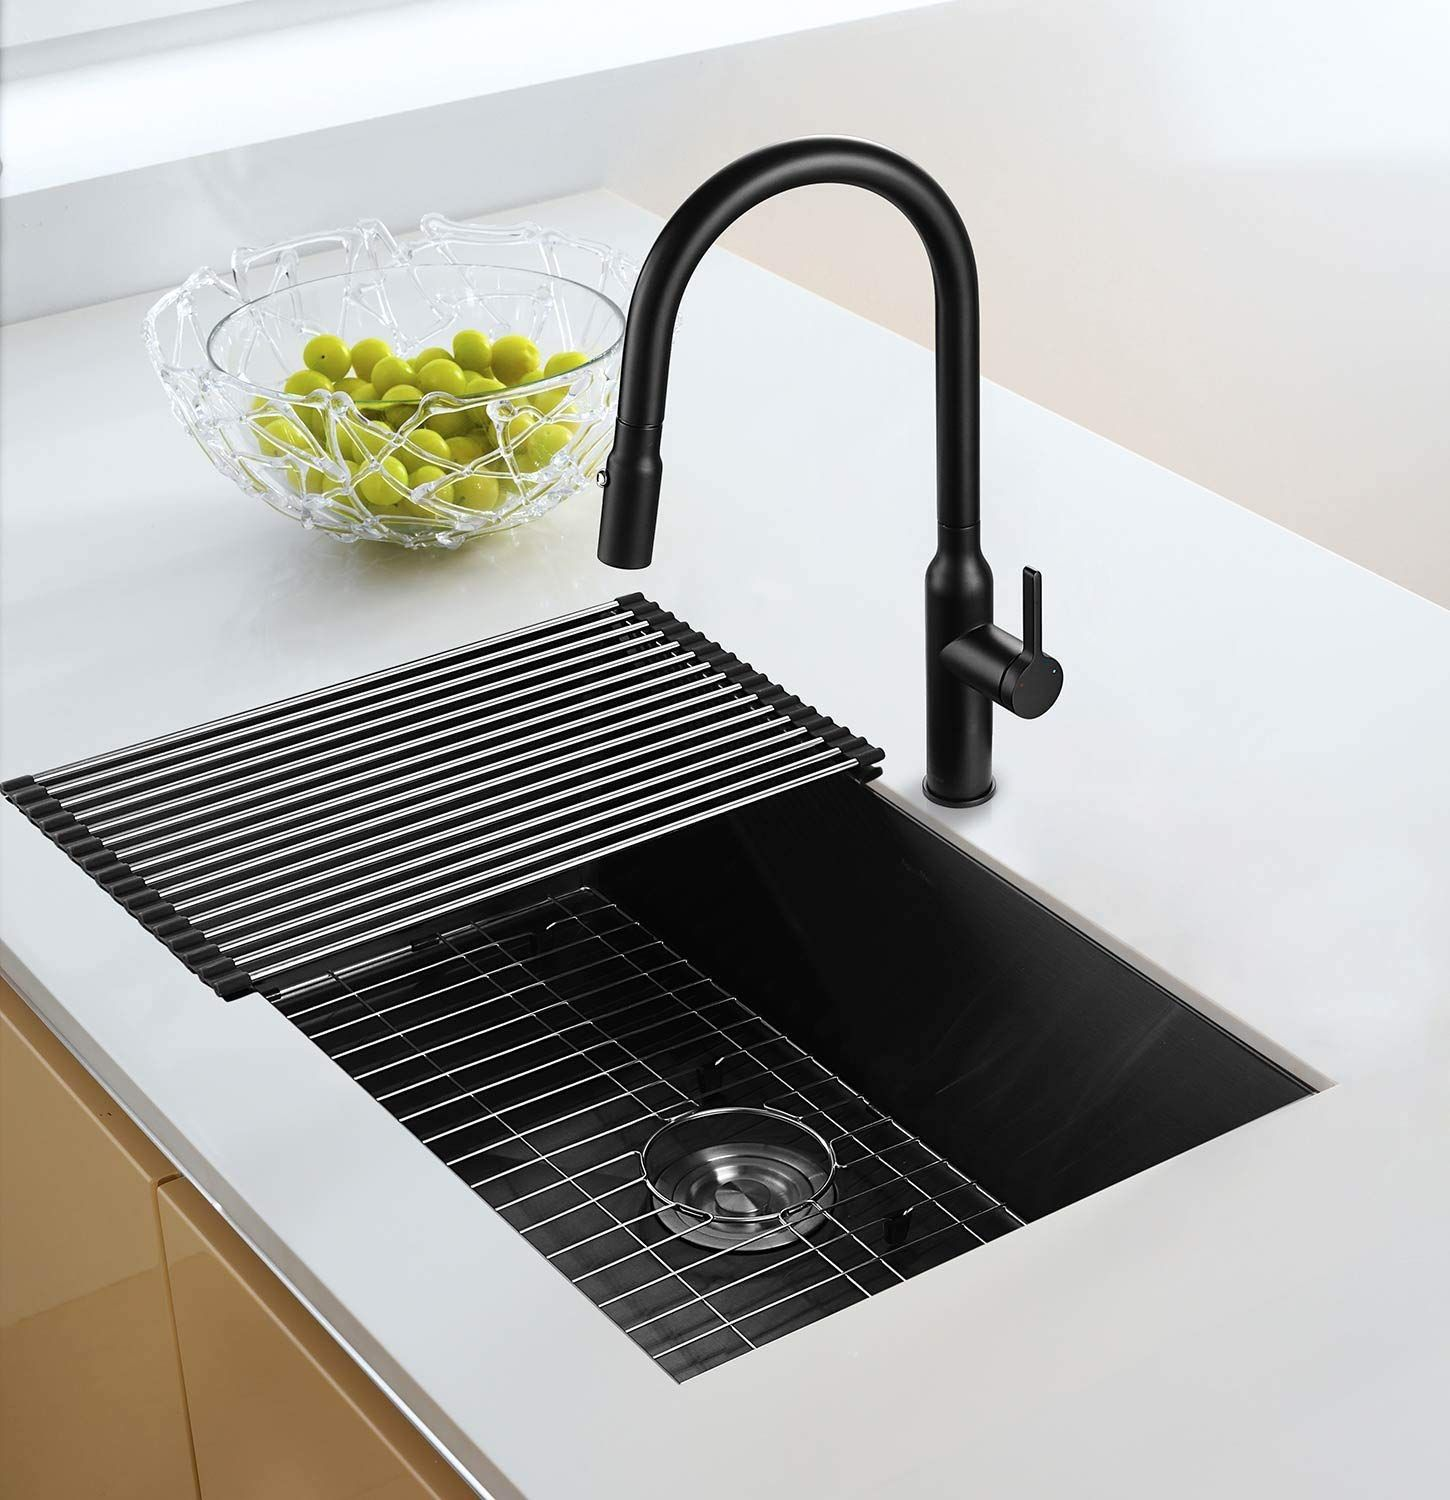 Aguastella As3018mb Kitchen Sink Stainless Steel 30 Inch Undermount Single Bowl Black Stainless Steel Kitchen Sink Kitchen Cabinets Makeover Cool Kitchens